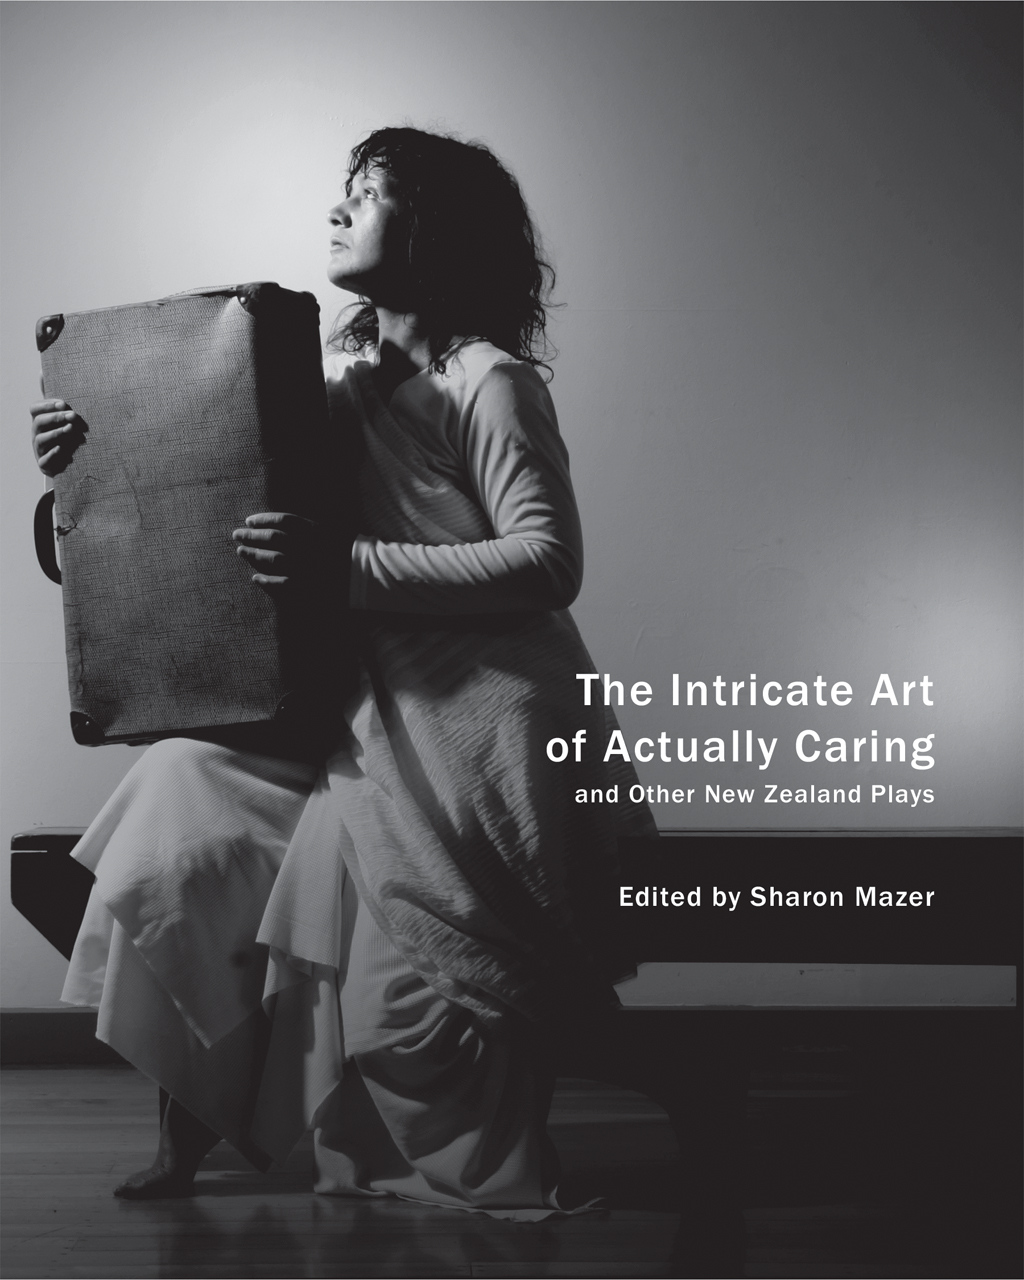 The Intricate Art of Actually Caring, and Other New Zealand Plays